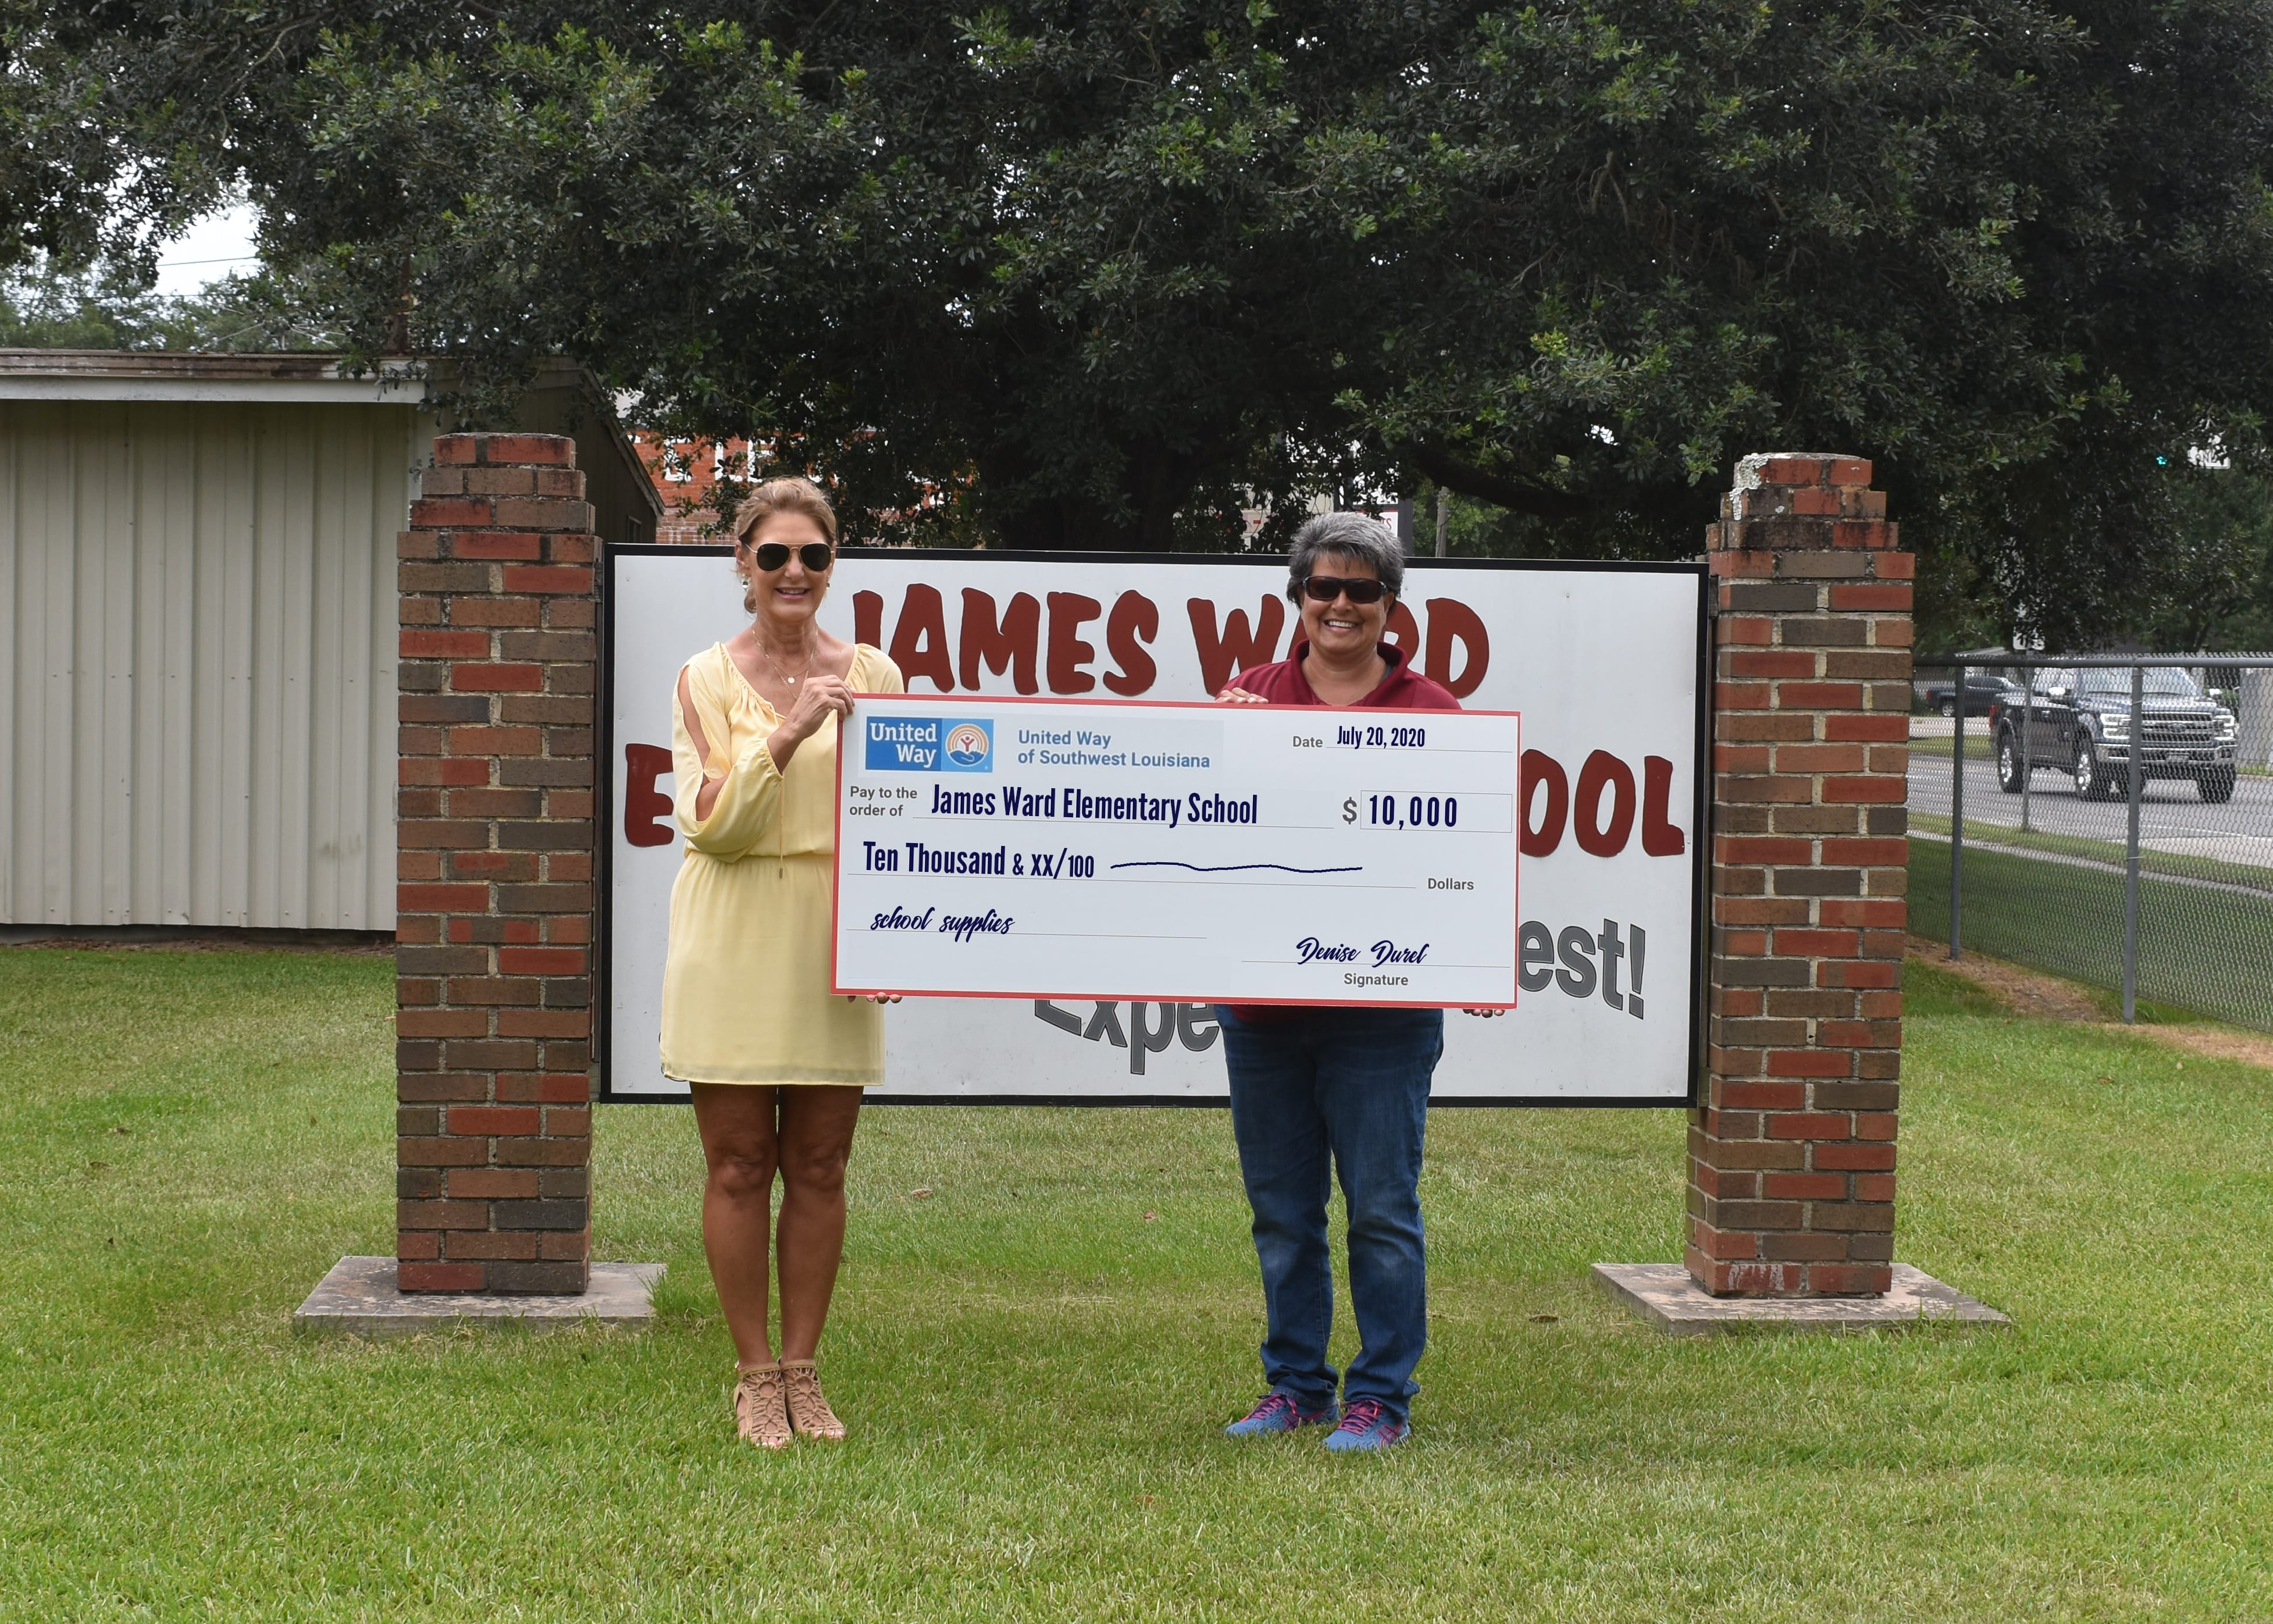 United_Way_Donates_$10k_to_James_Ward_Elementary_School_Jennings.jpg